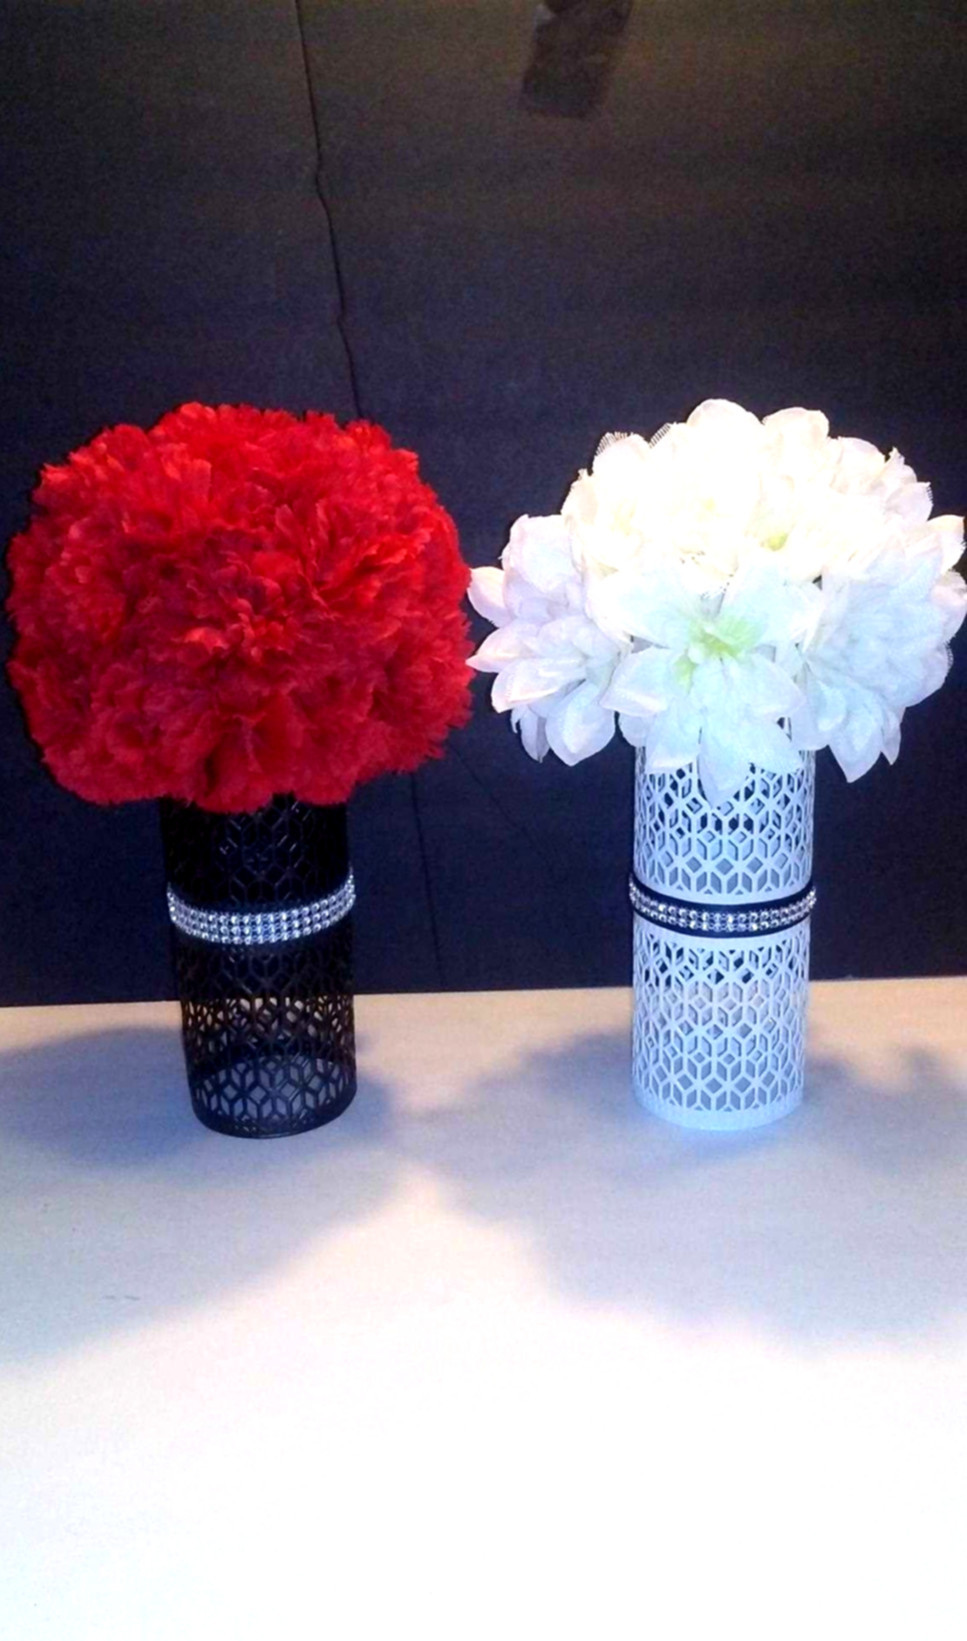 flowers in a glass vase of diy dollar tree glam vases diy floral home decor one dollar regarding diy dollar tree glam vases diy floral home decor one dollar pictures